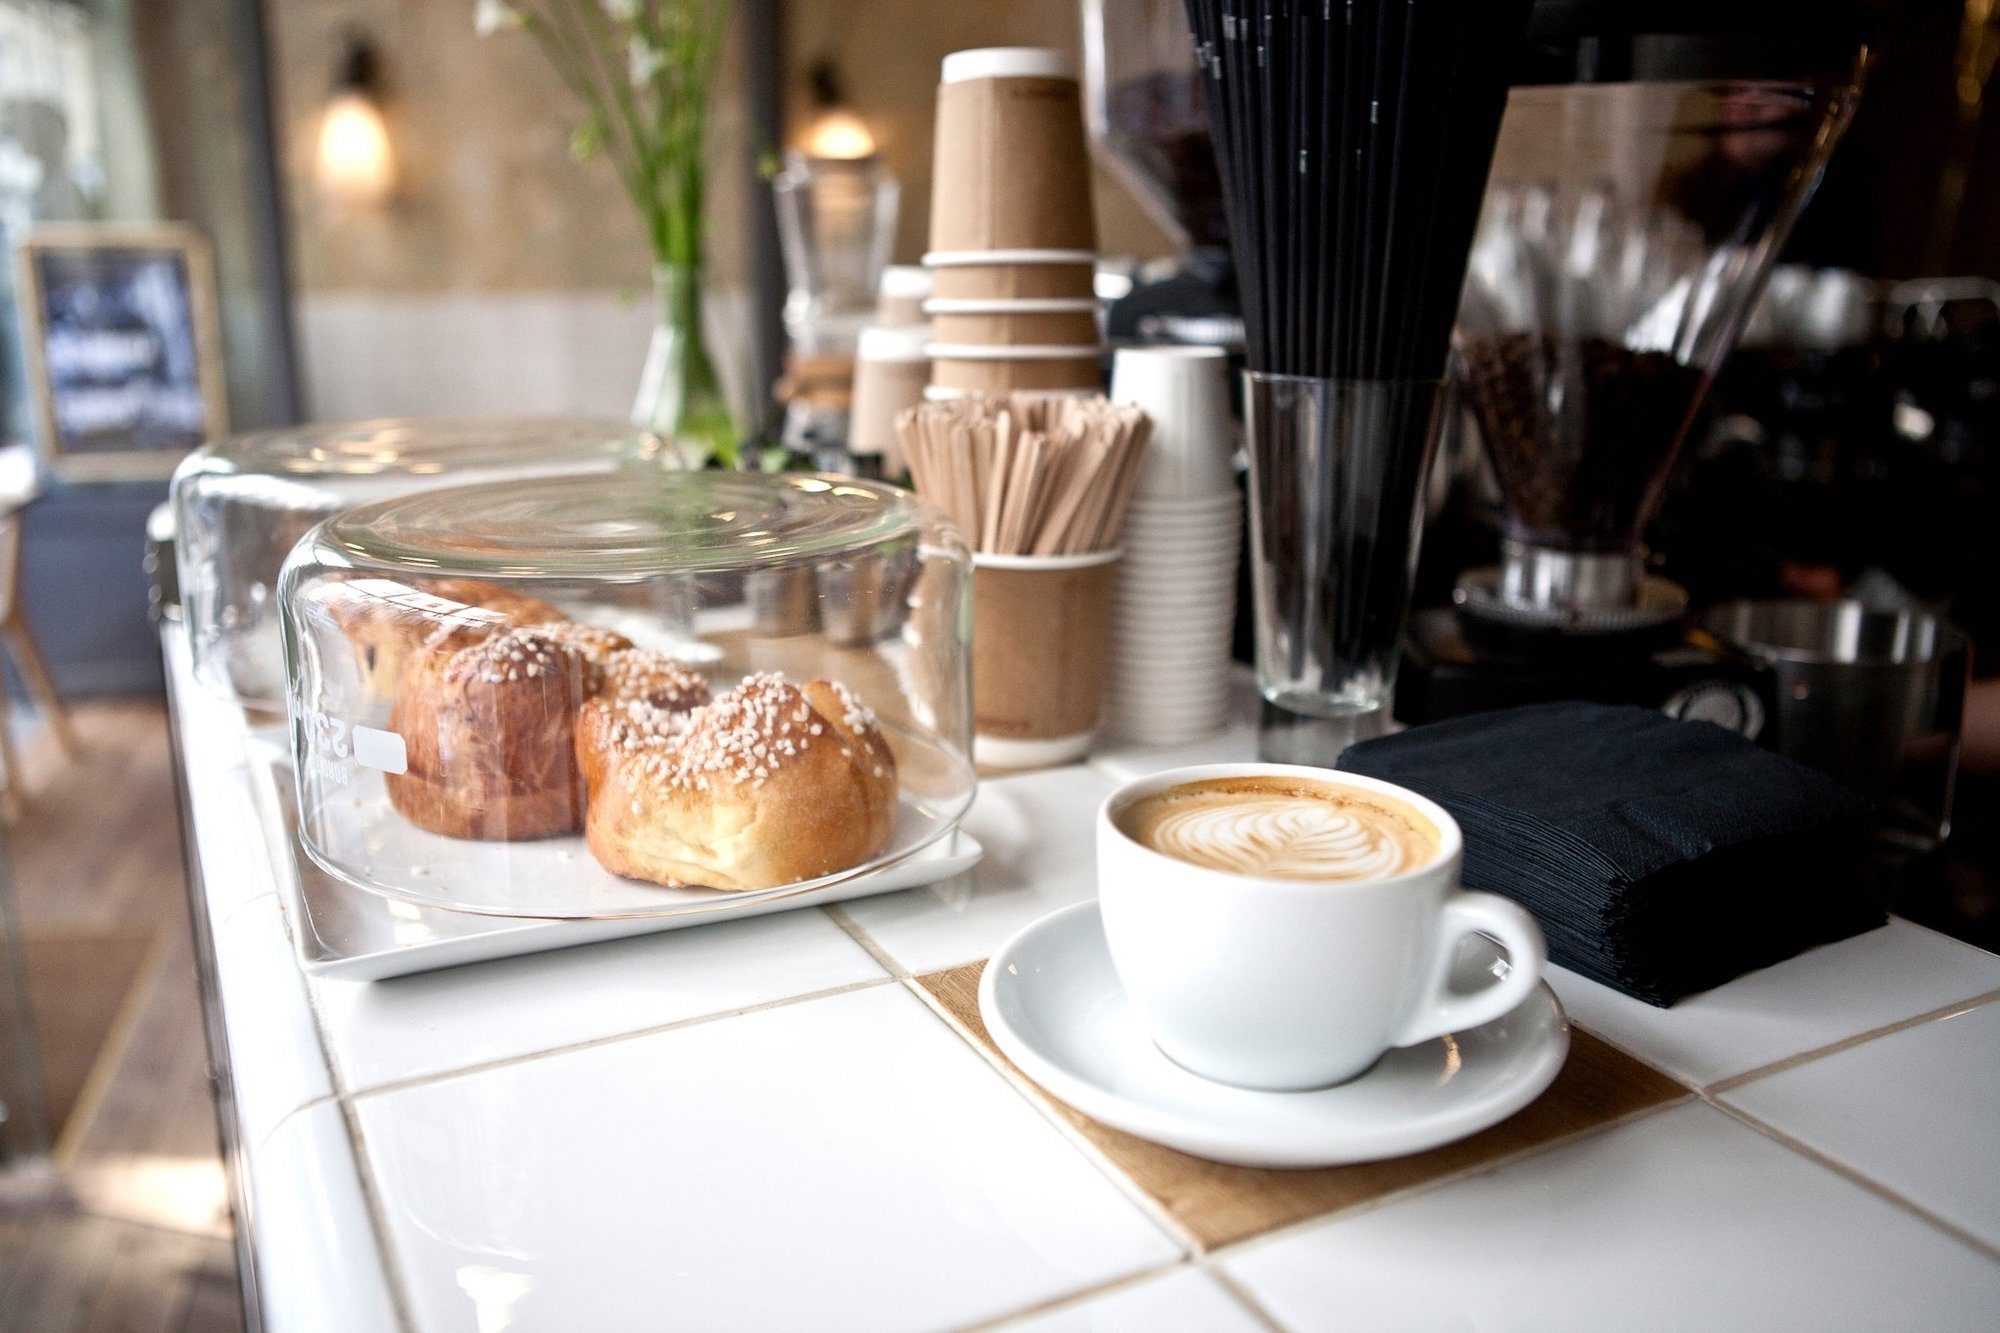 A cappuccino in a white cup and saucer on a tiled counter next to sugar-sprinkled brioche at Coutume gluten-free coffee shop in Paris.